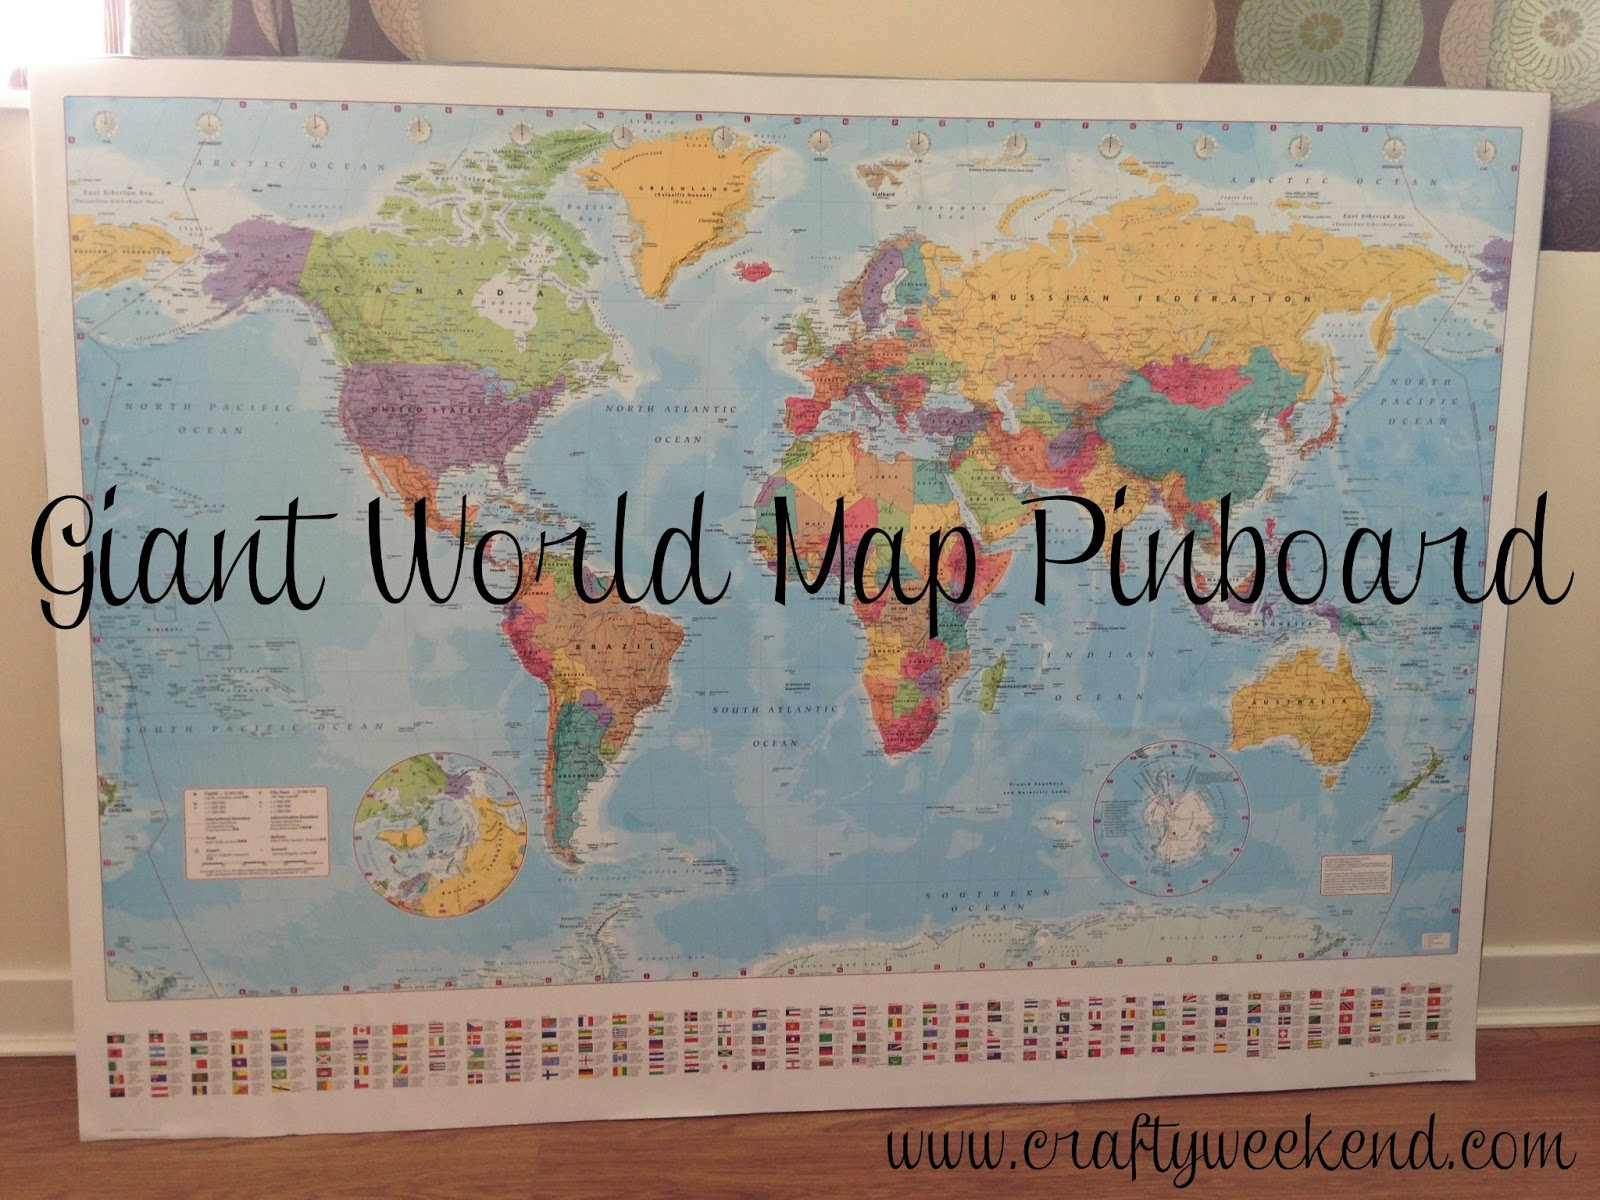 Giant World Map Pinboard Crafty Weekend Craft projects for the – Cork Board World Travel Map